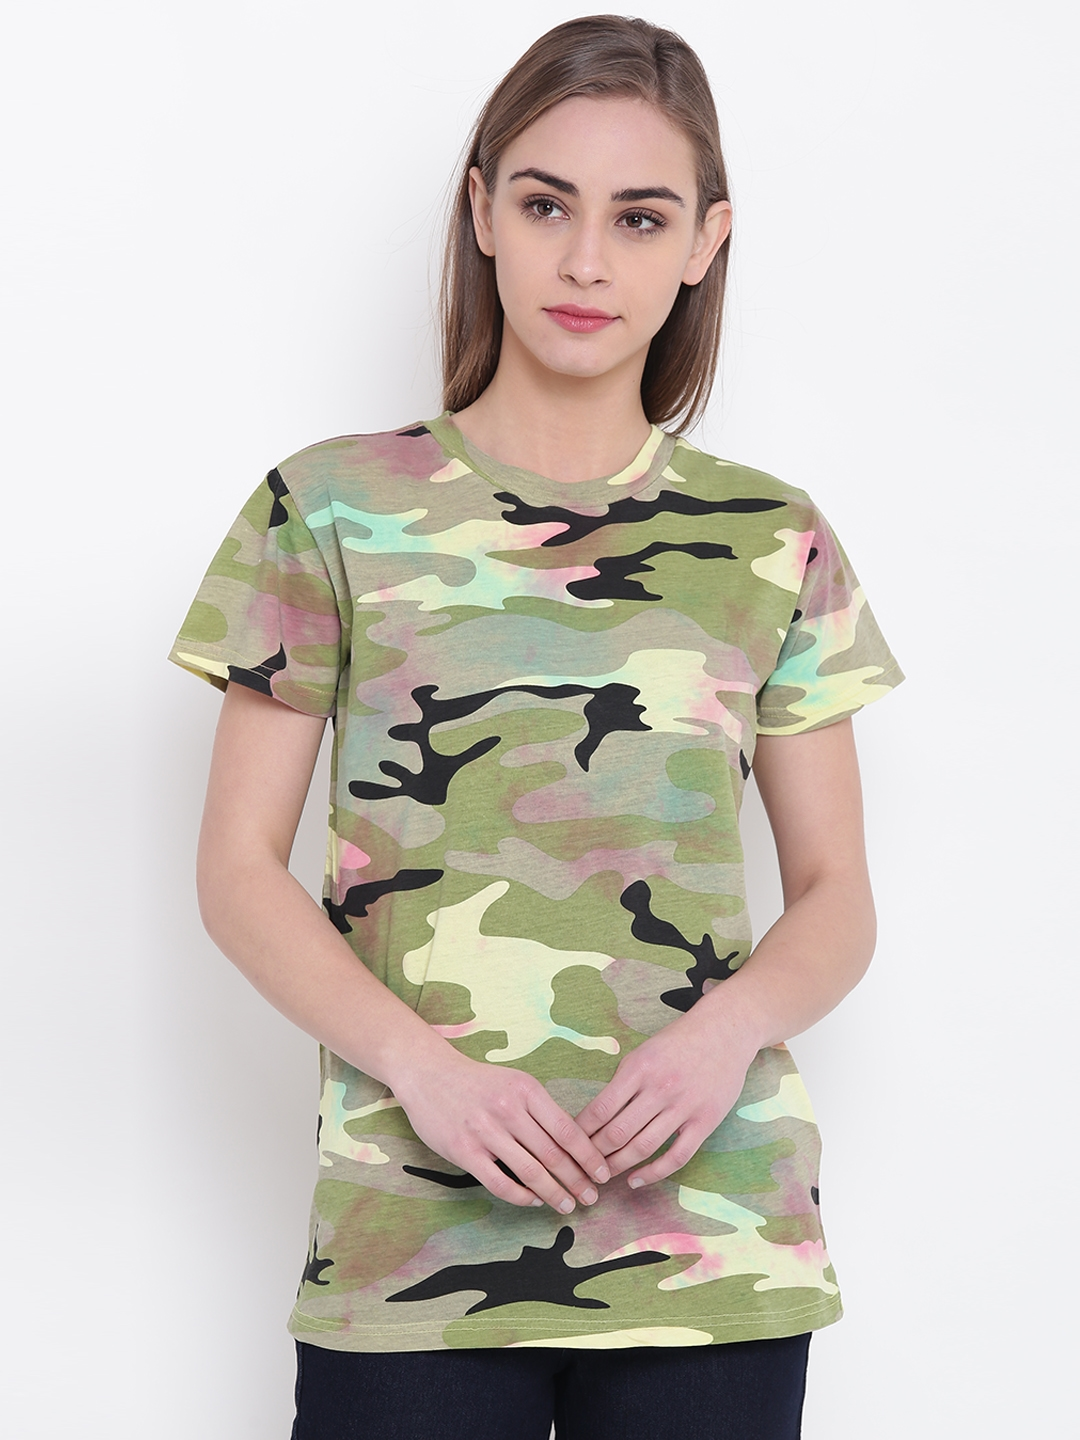 007c2dbfcf Camo Print T Shirt Source · Buy FOREVER 21 Women Olive Green   Black Camouflage  Print Round Neck